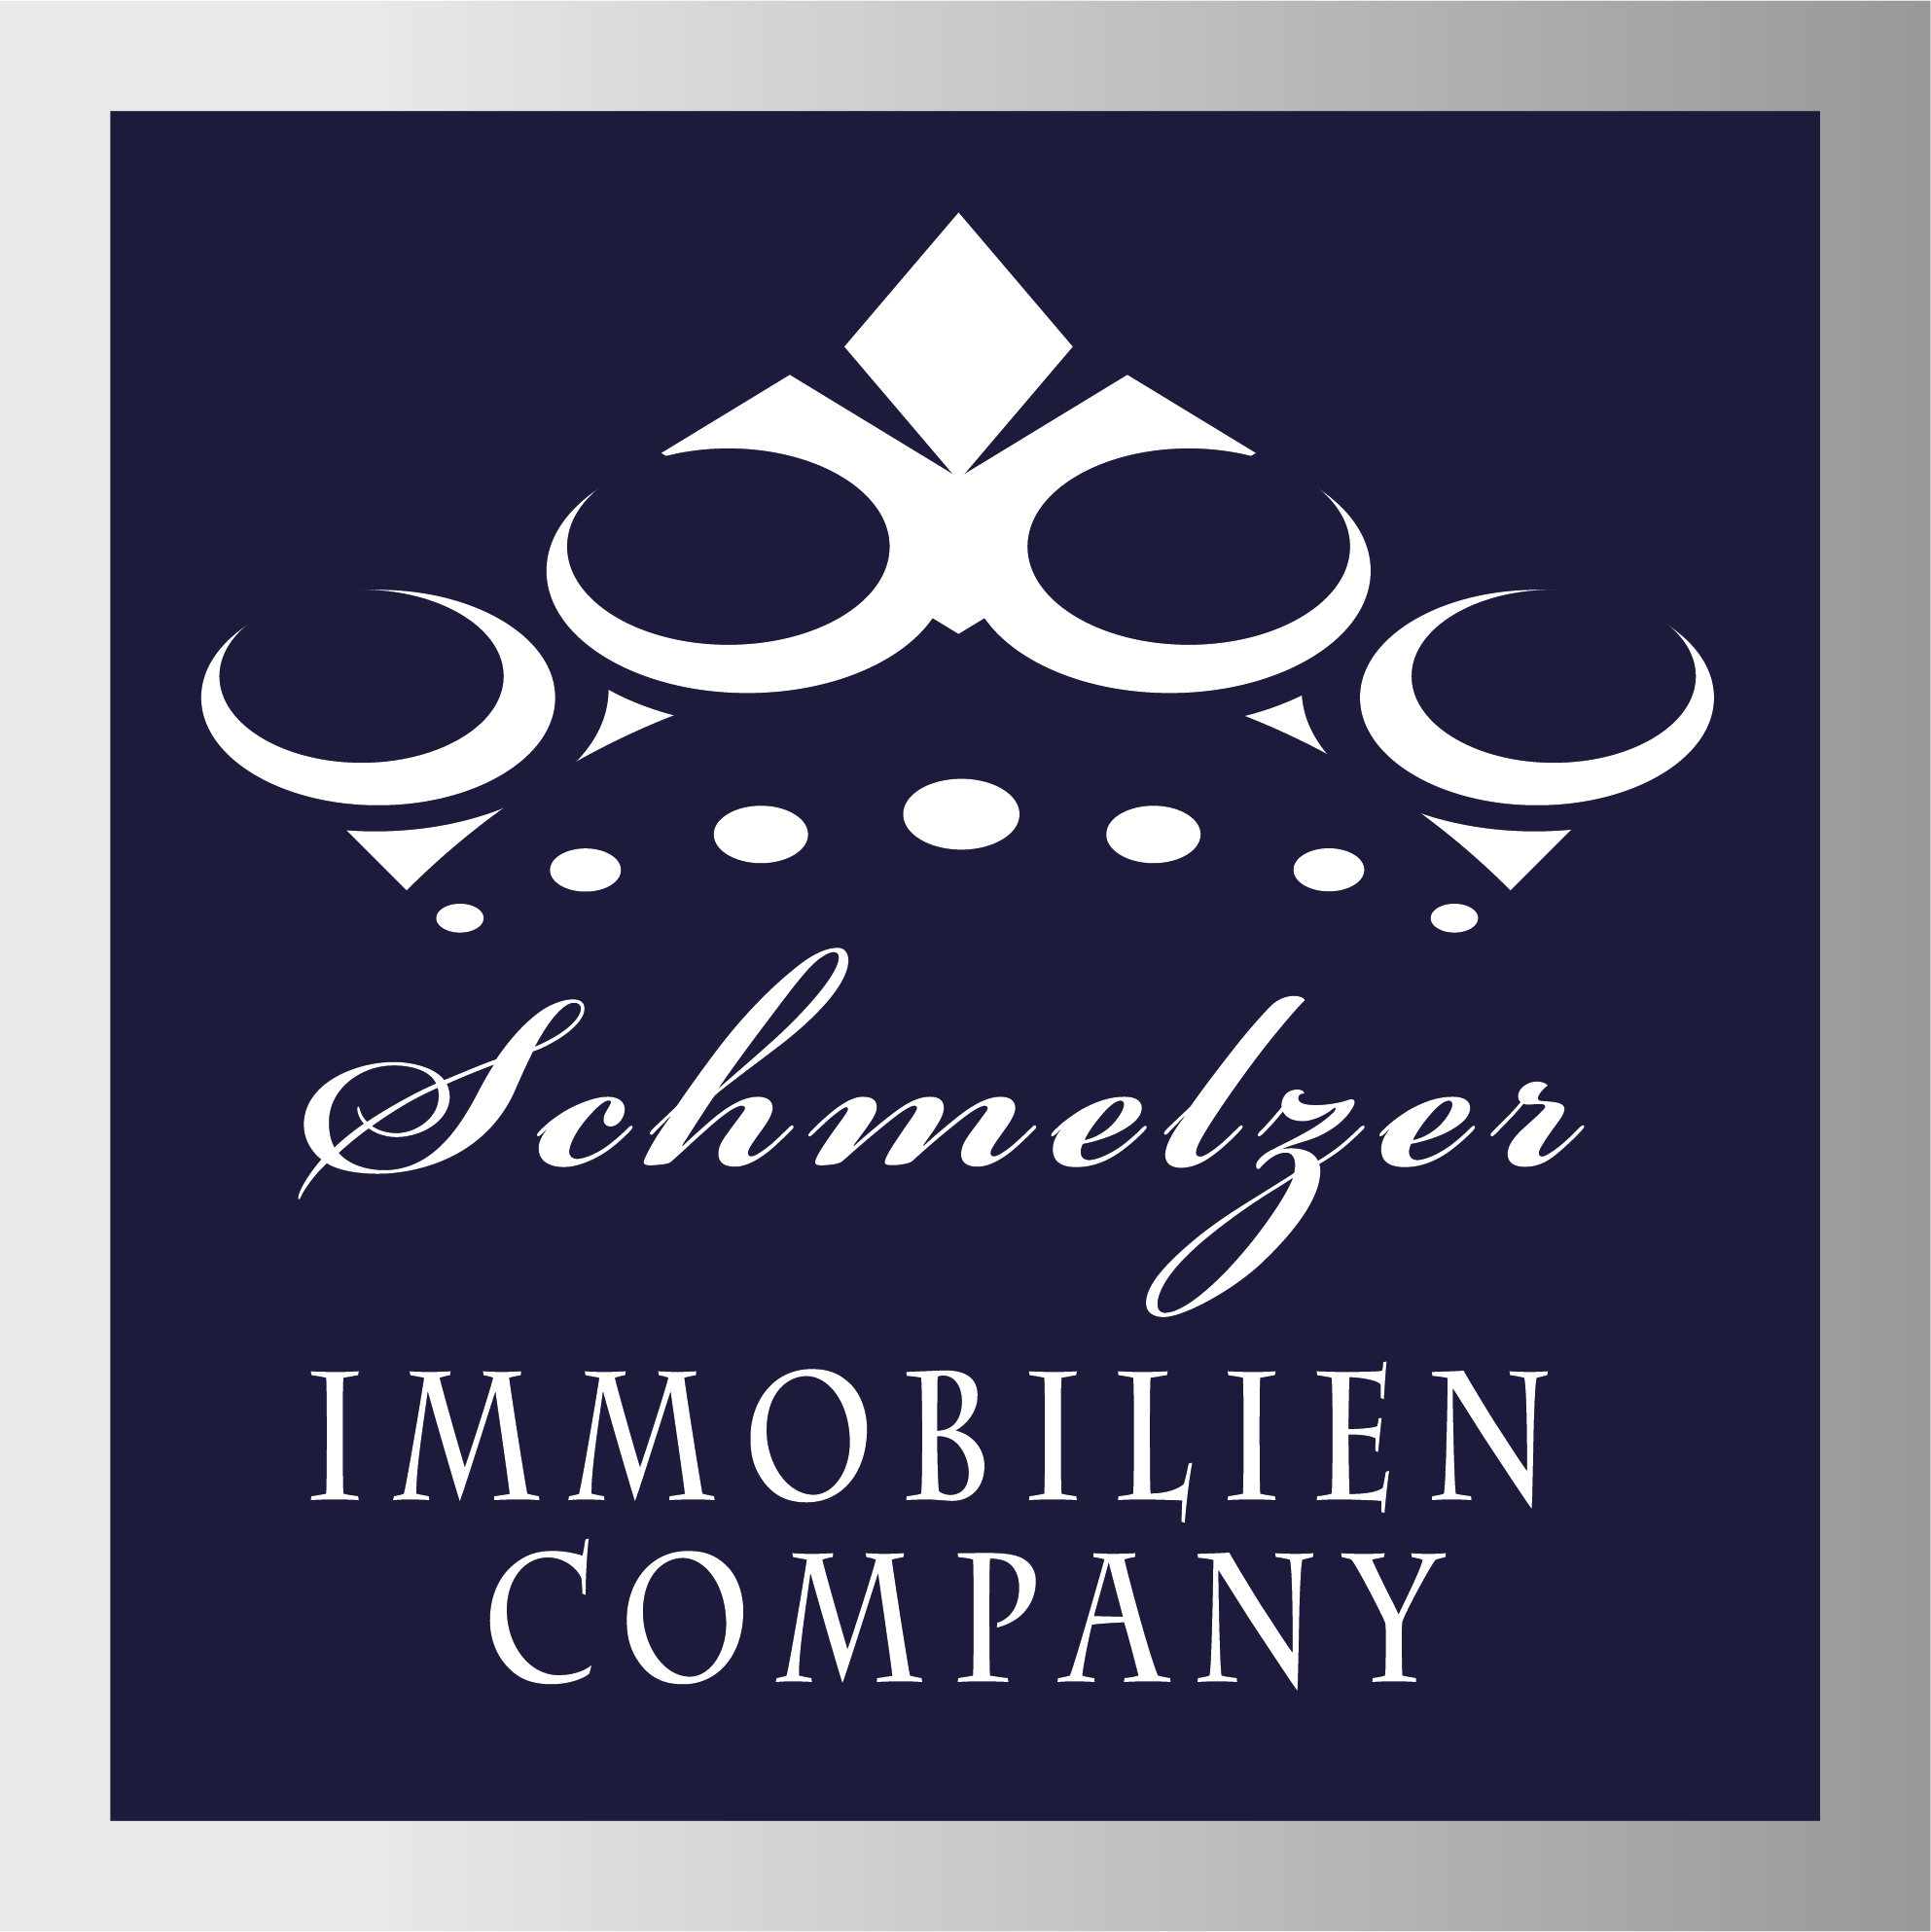 Schmelzer Immobilien Company